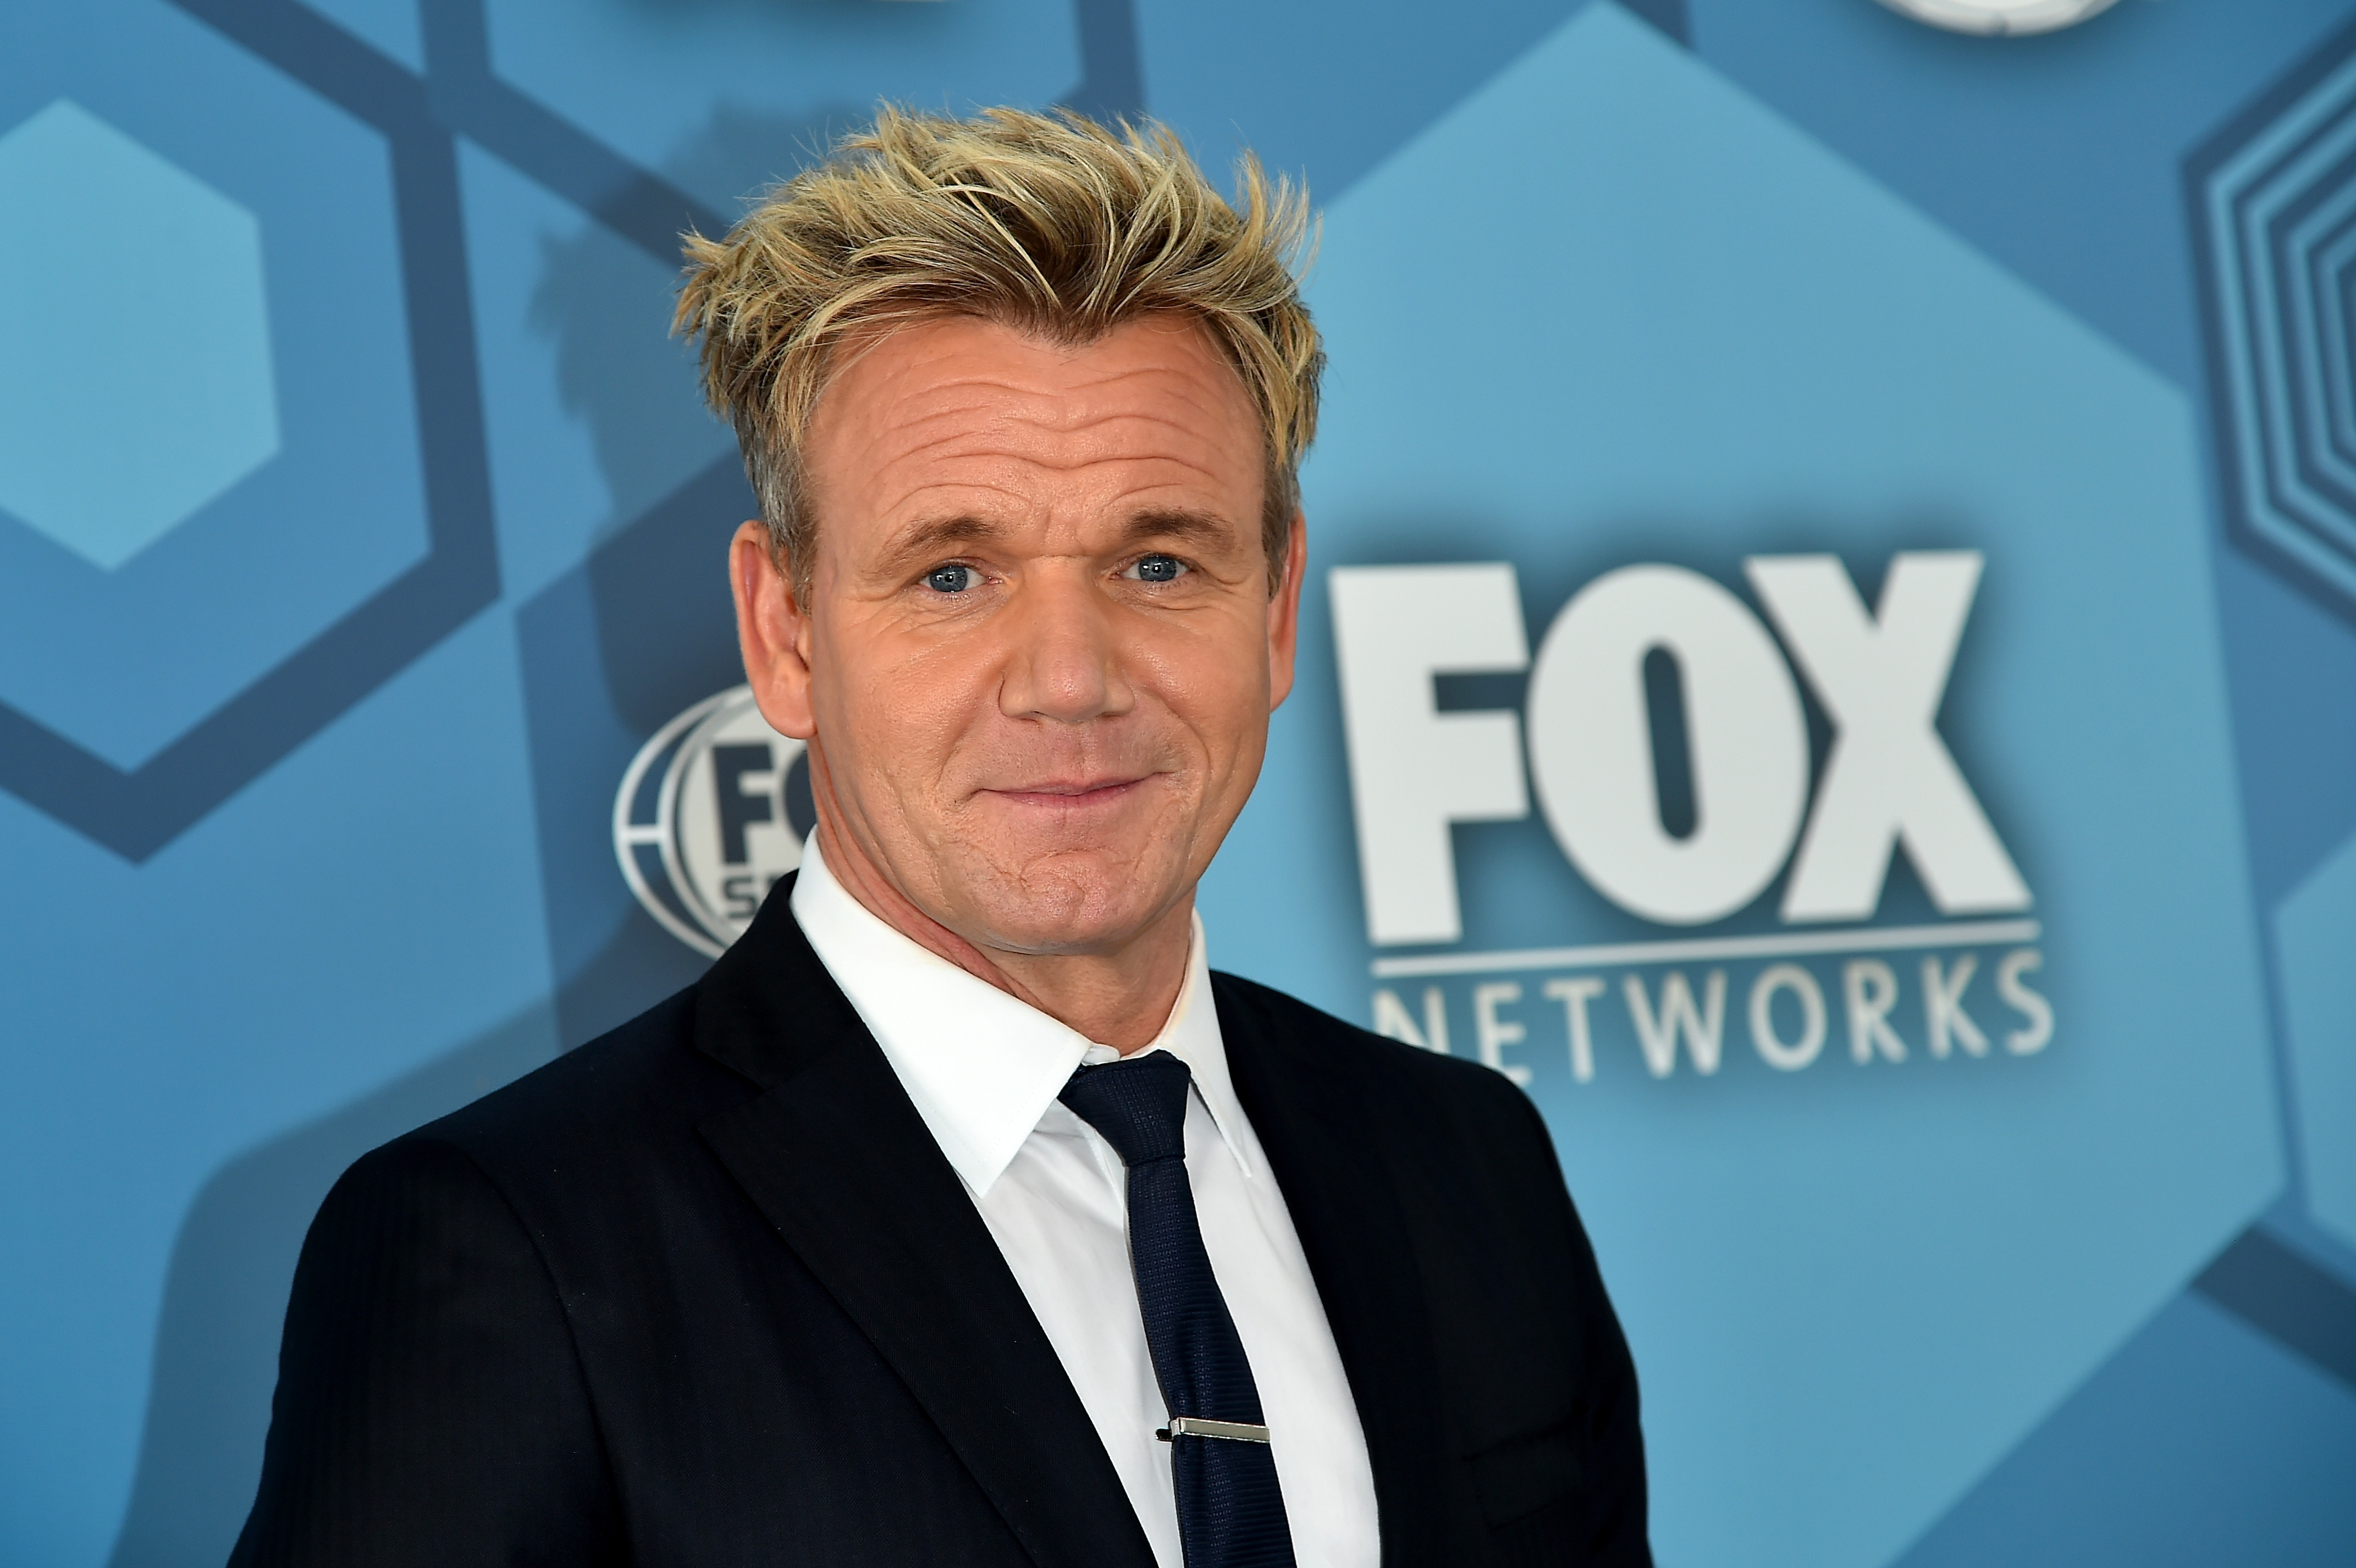 Gordon Ramsay Wallpapers Images Photos Pictures Backgrounds 4285x2852